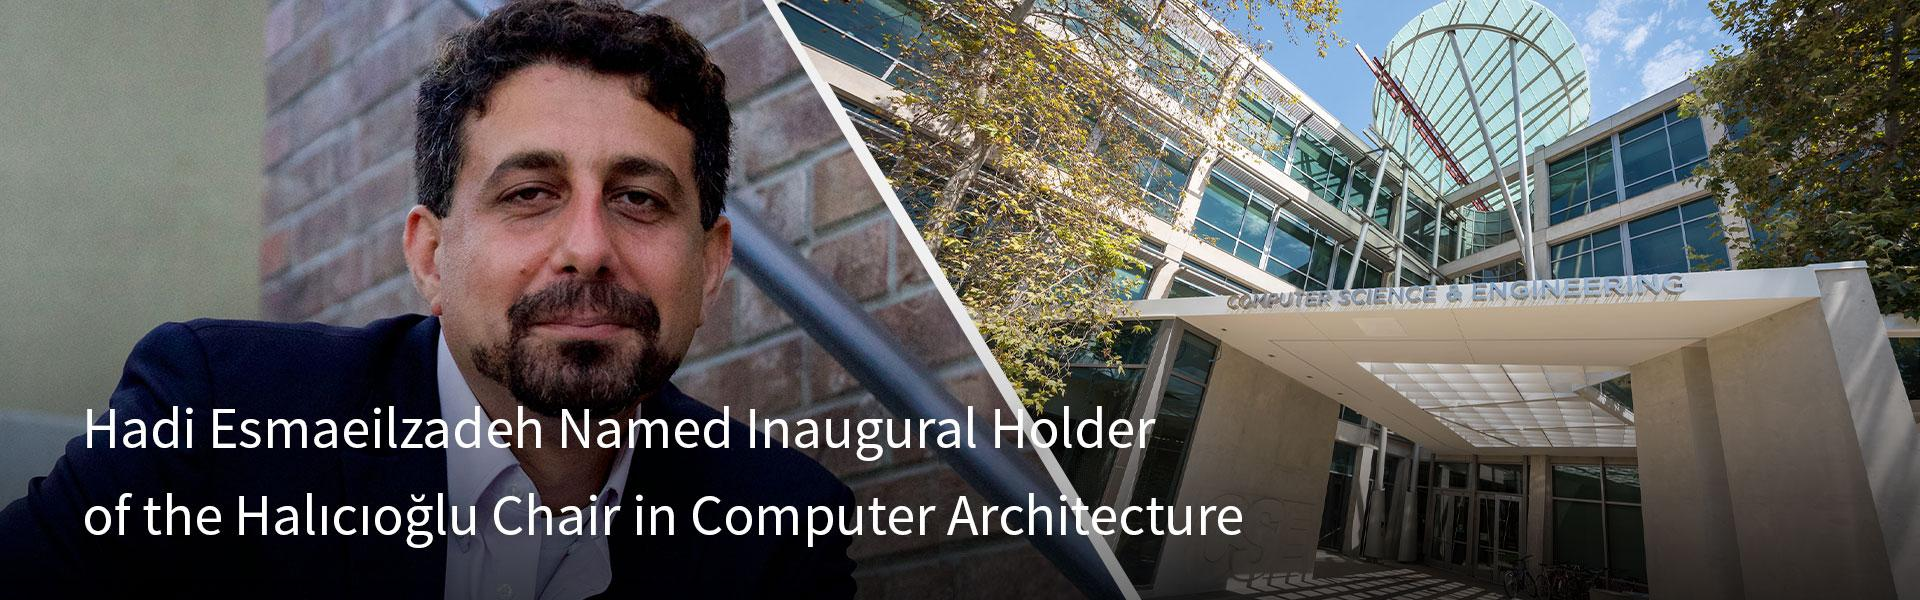 Prof. Hadi Esmaeilzadeh named Inarugural Holder